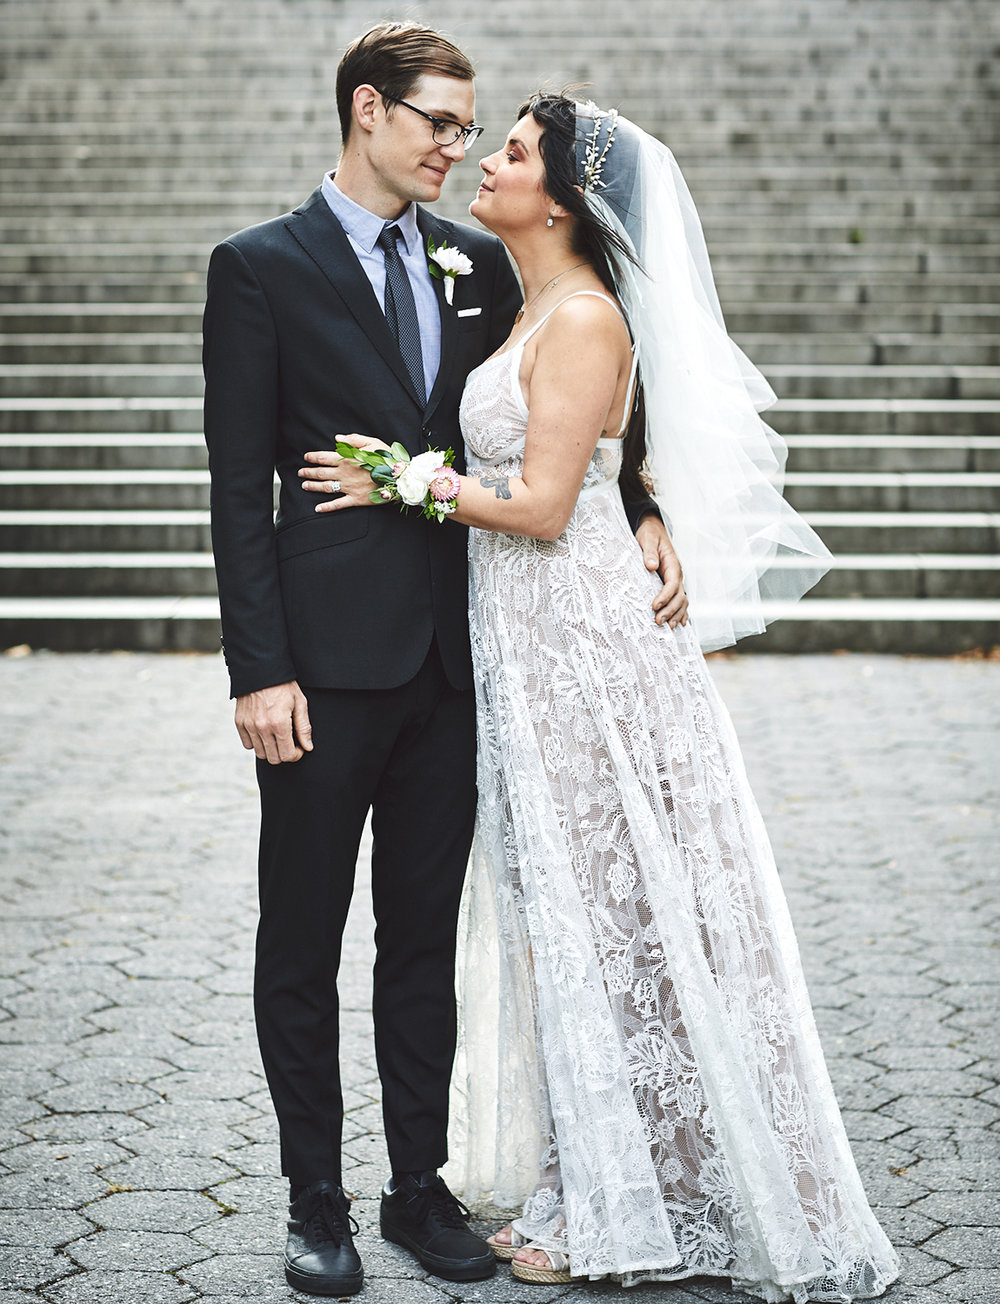 170920_FortGreeneWeddingPhotography_BrooklynWeddingPhotographer_By_BriJohnsonWeddings_0024.jpg